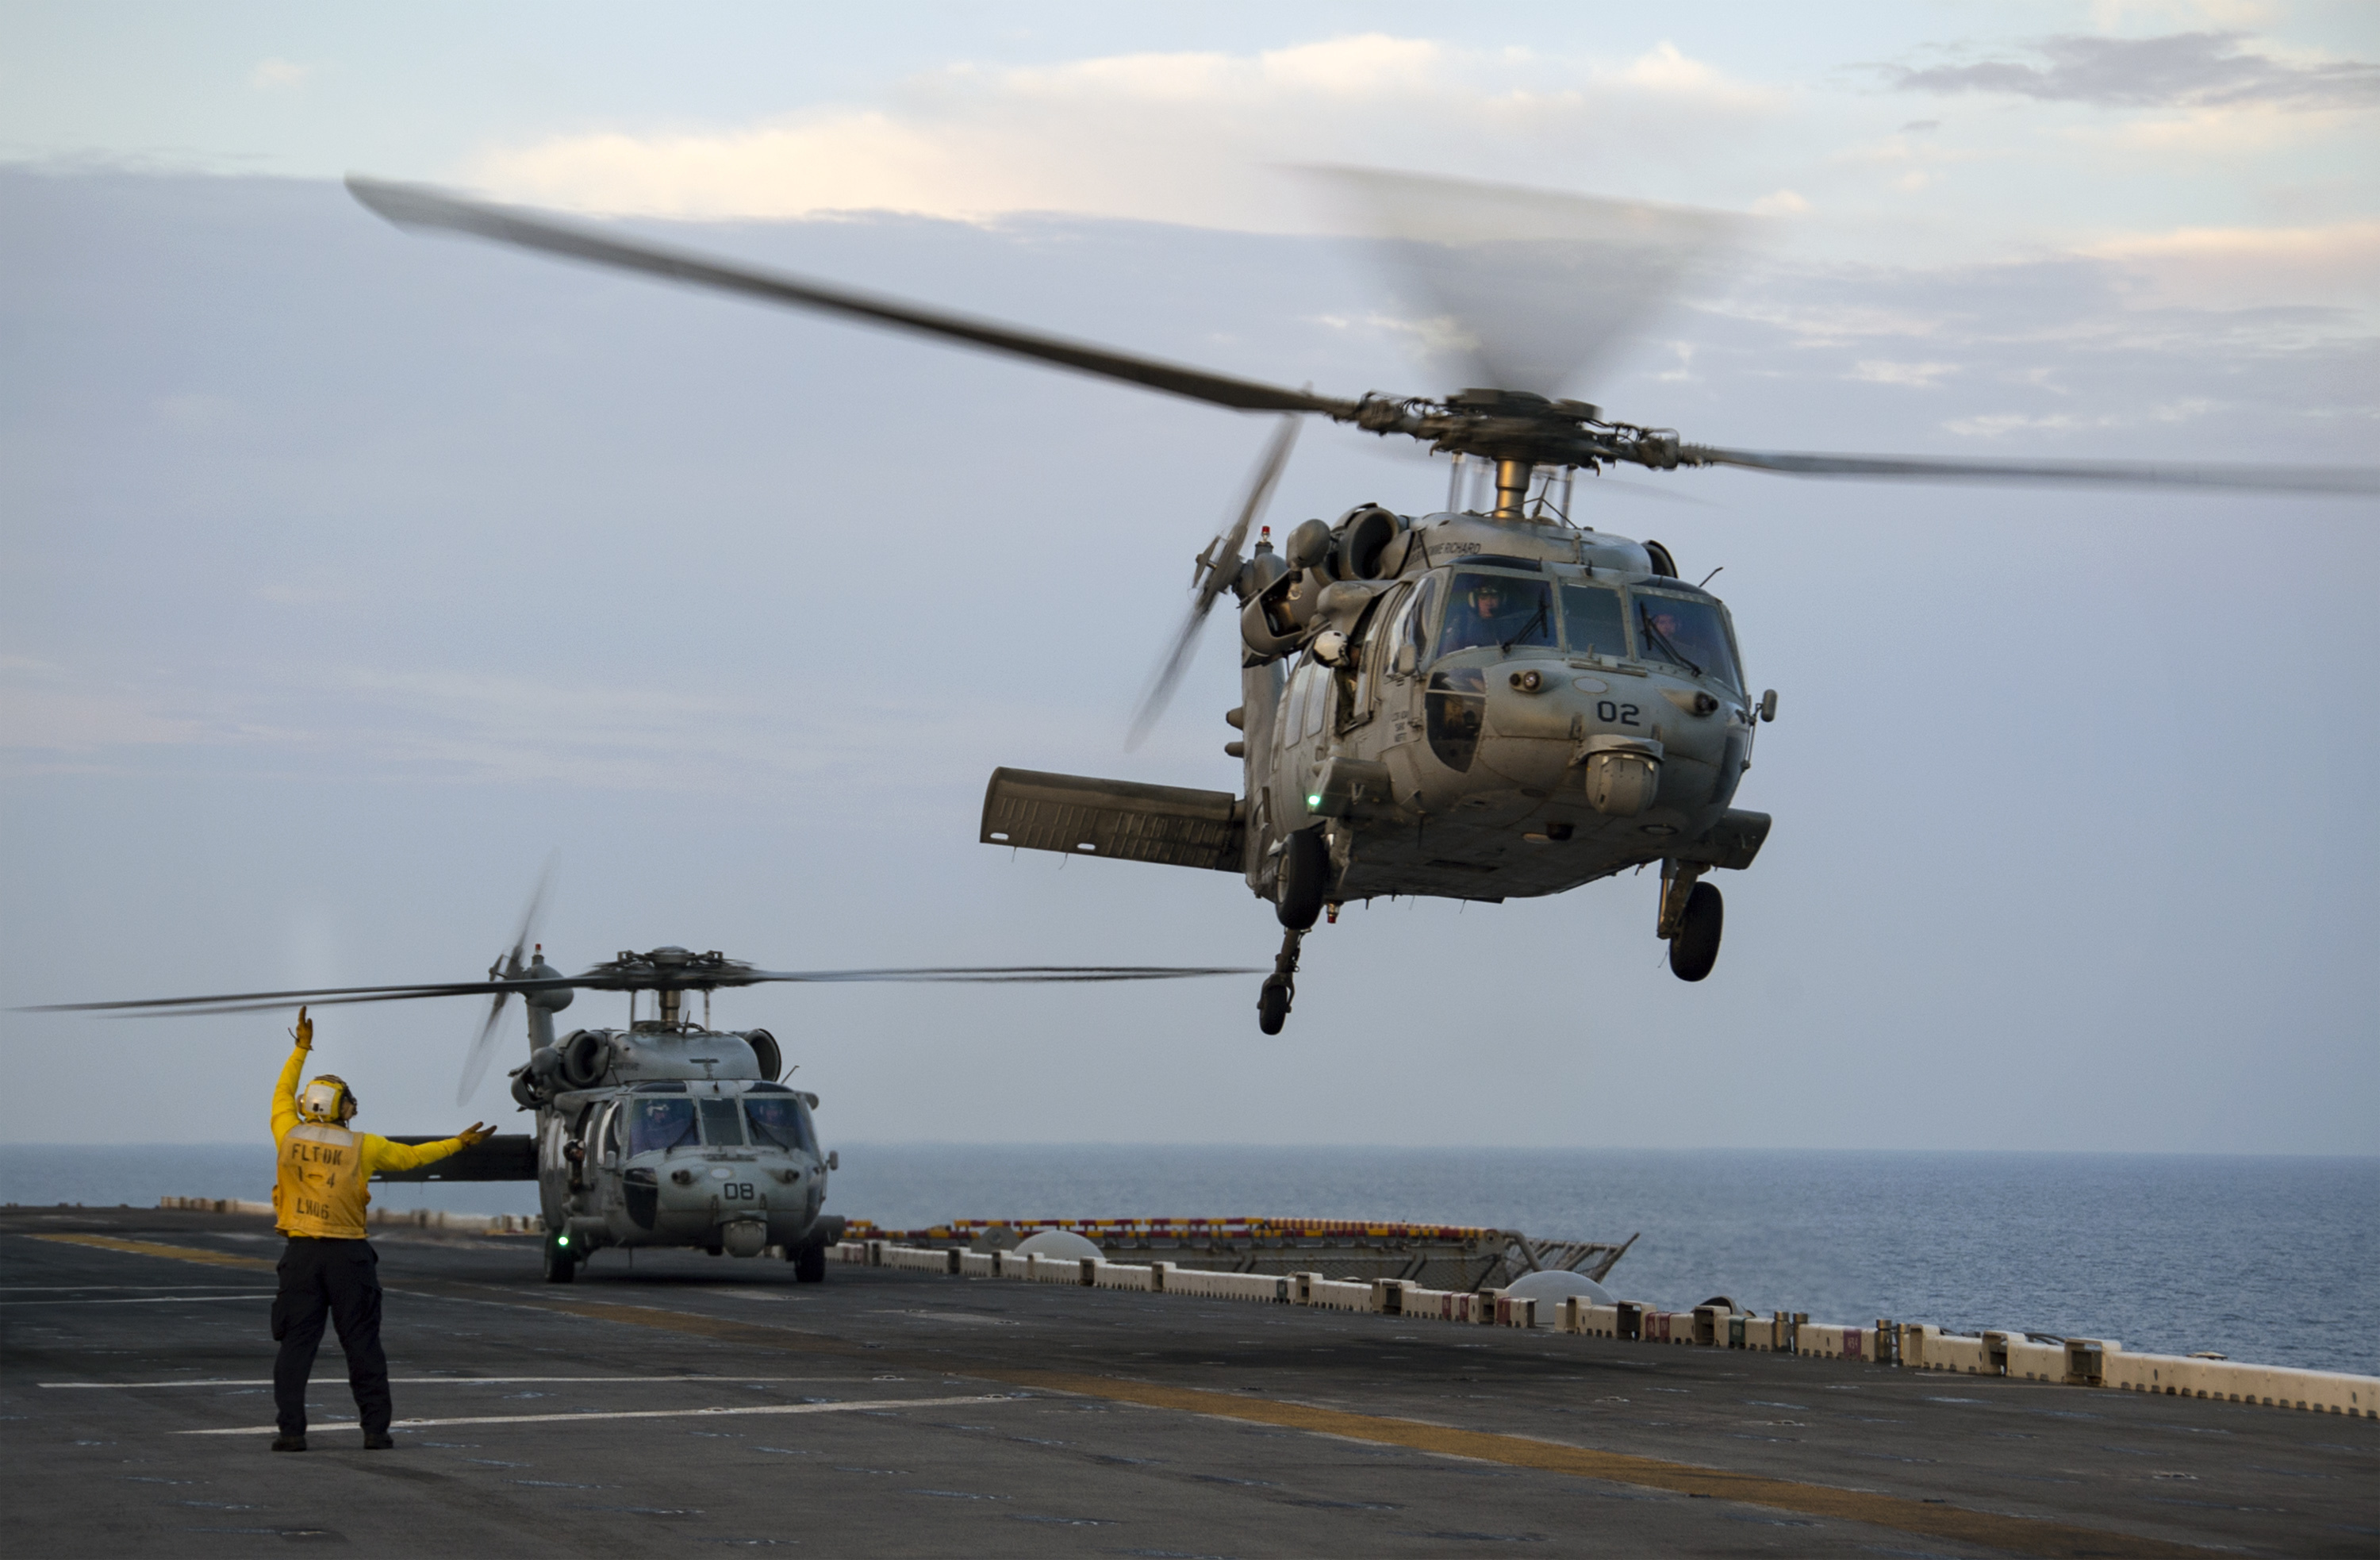 MH-60S Sea Hawk Helecopter, Aircraft, Aviation, Hawk, Helicopter, HQ Photo